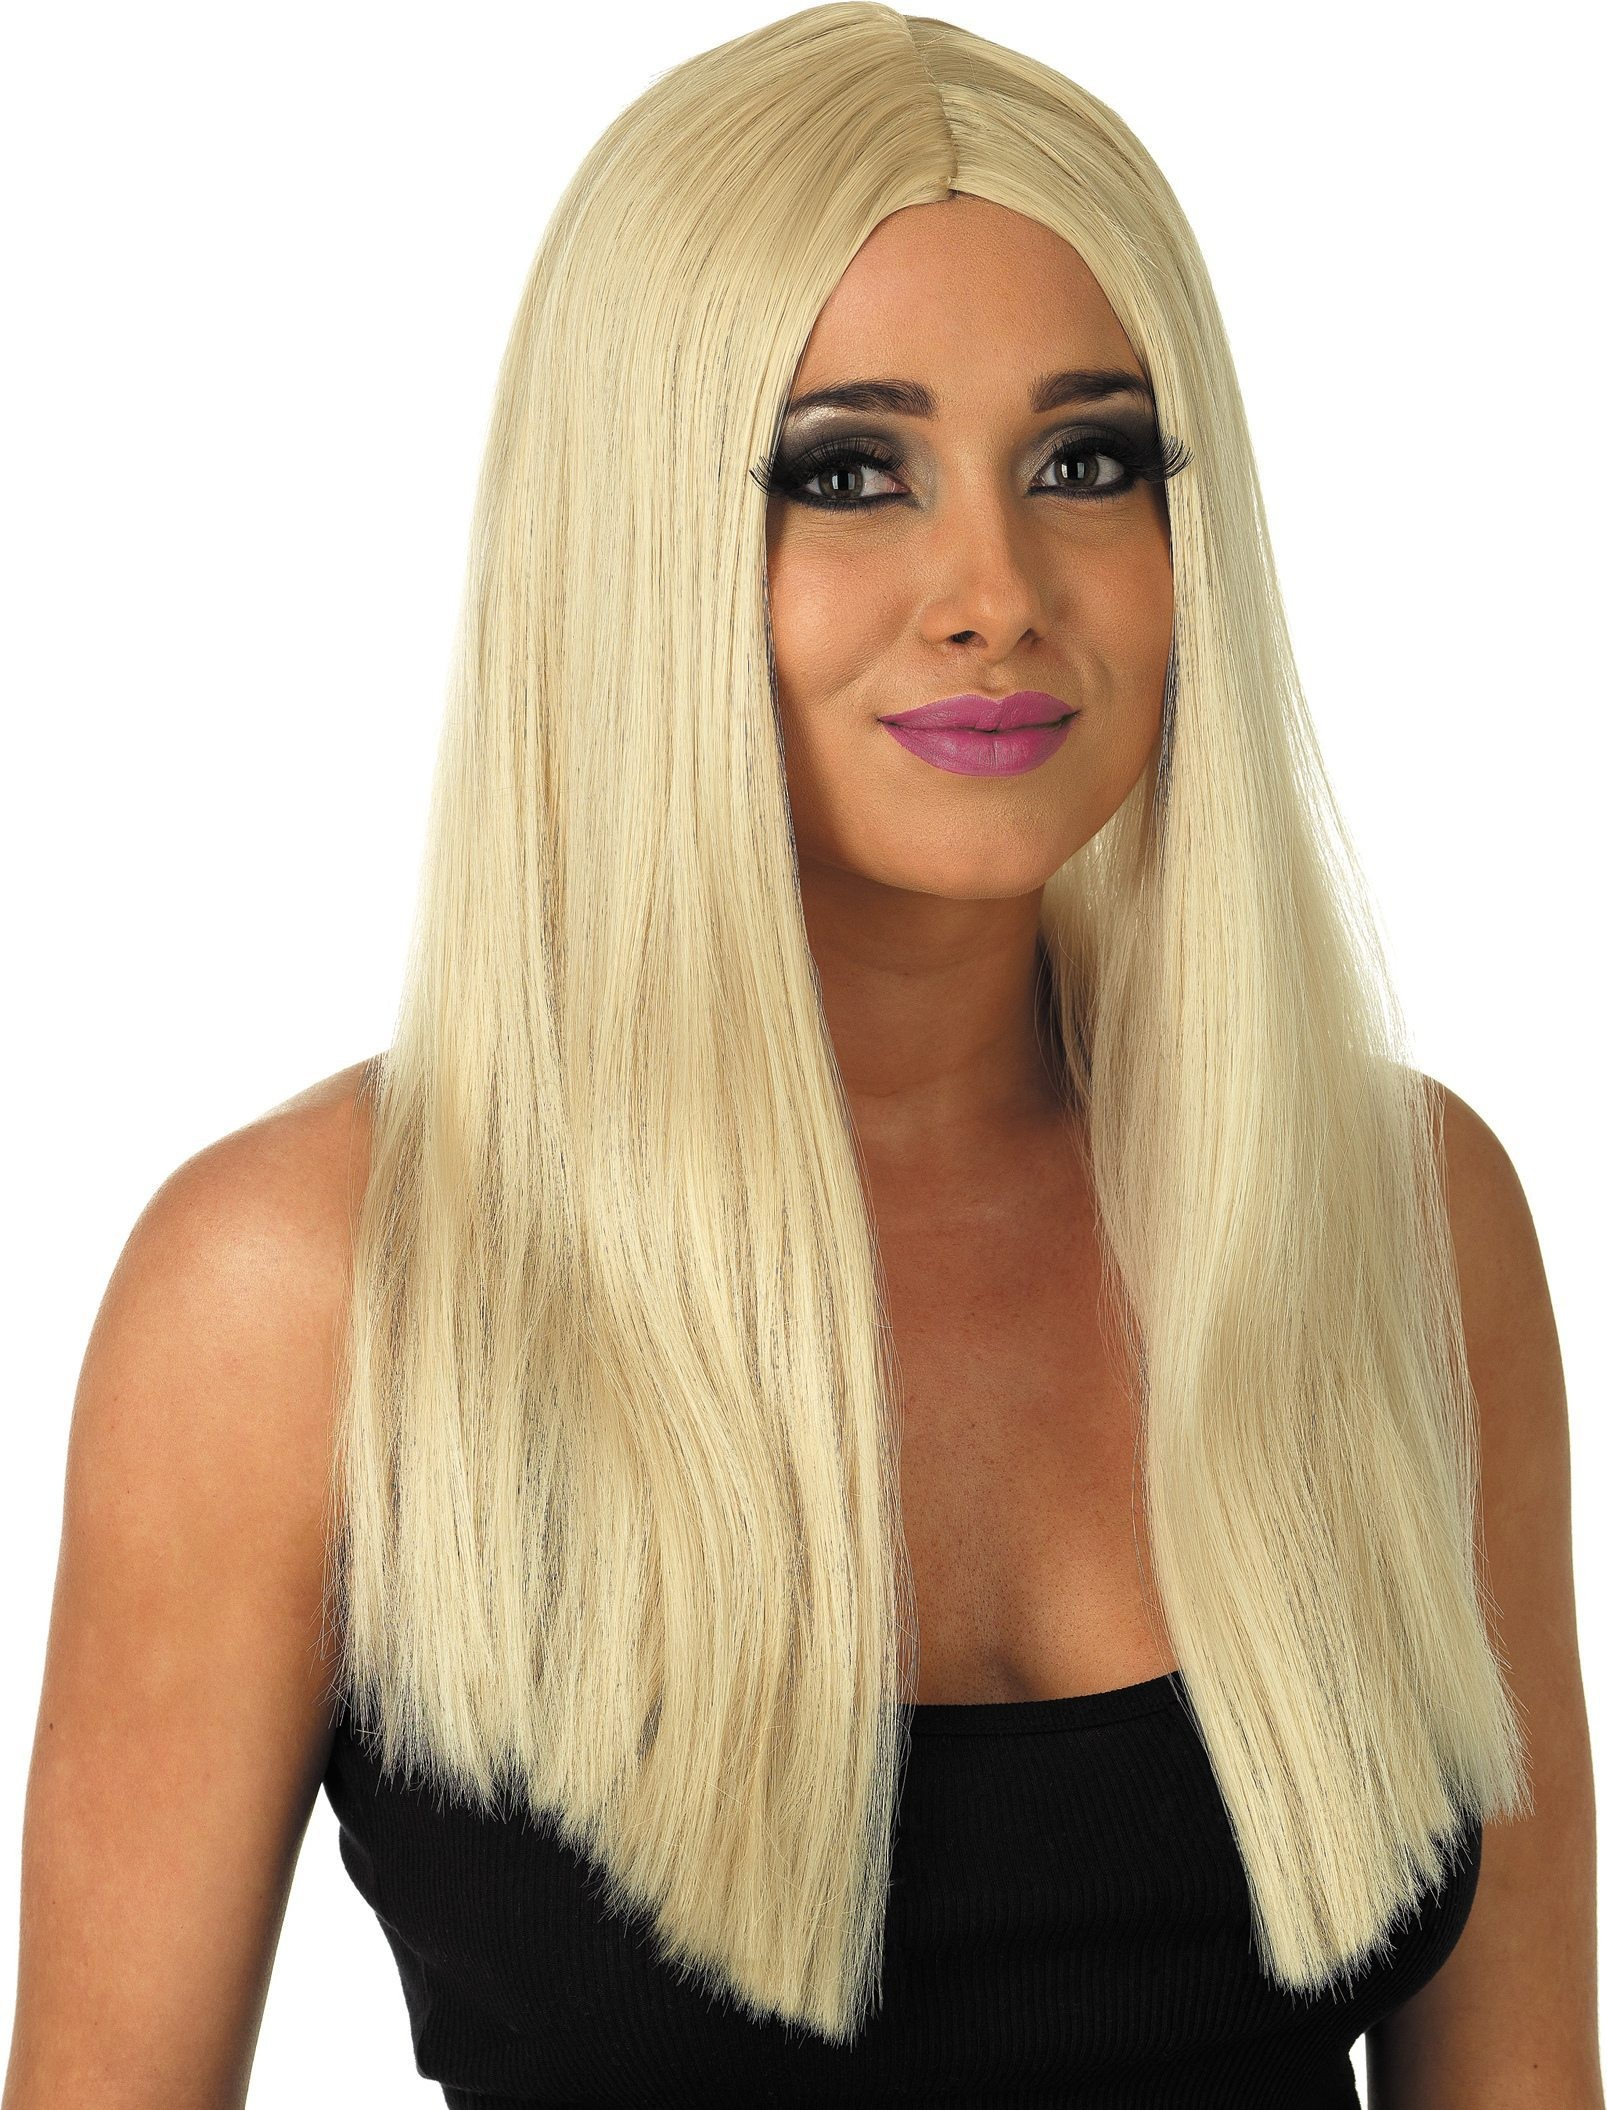 Long Blonde Wig (Fancy Dress Wigs)